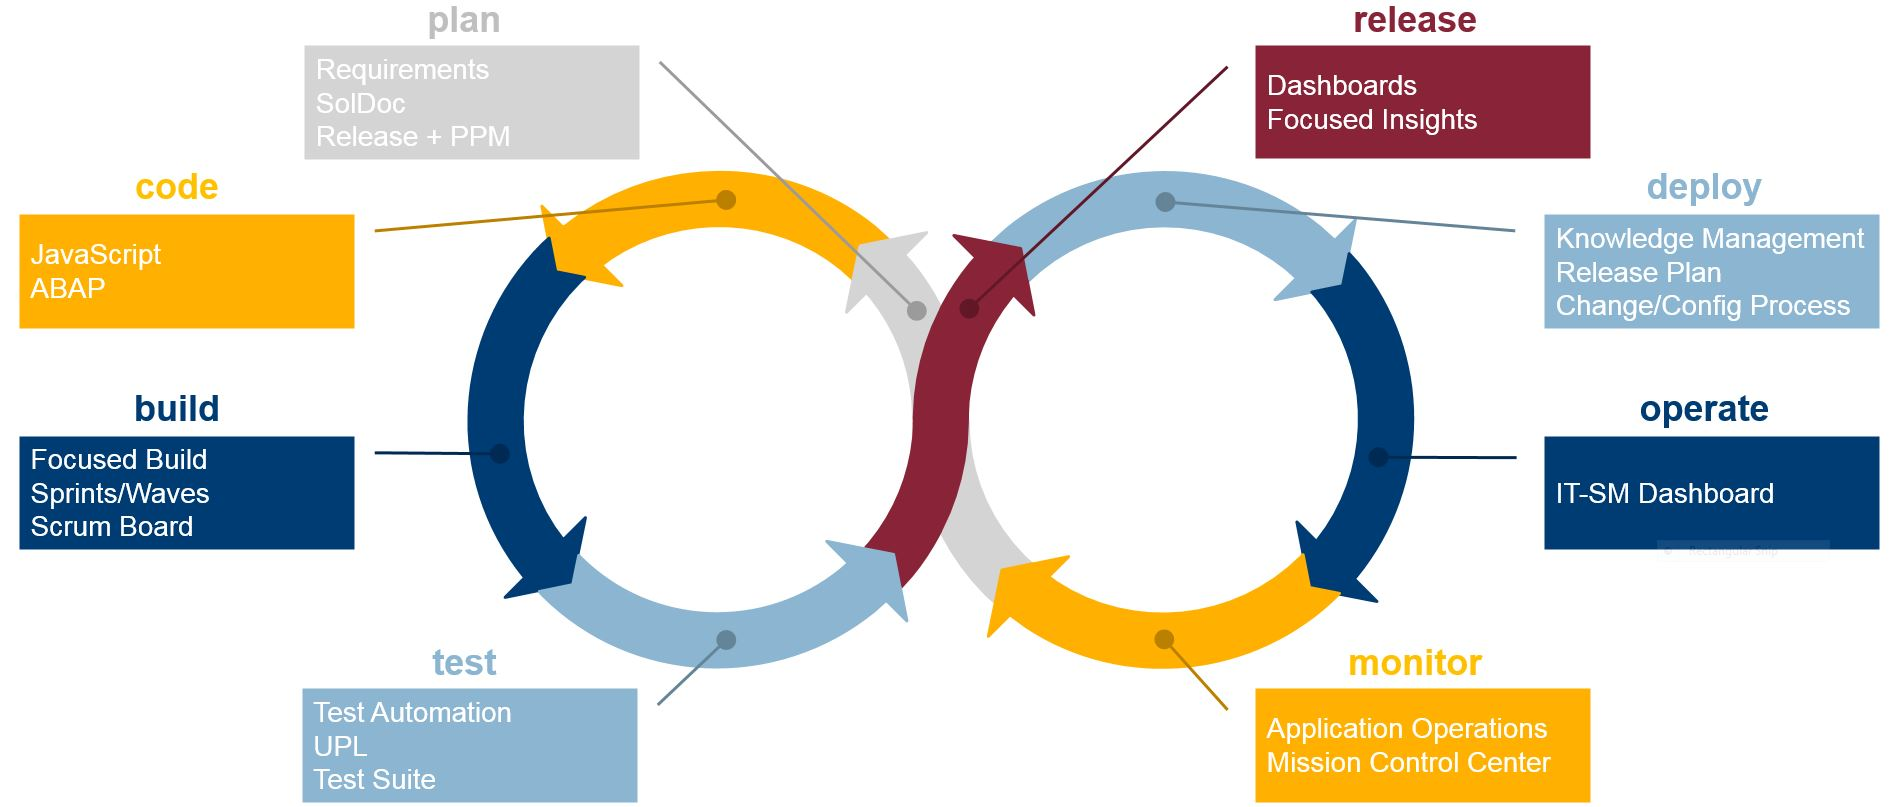 SAP Focused Build – how to get more flexibility and agility